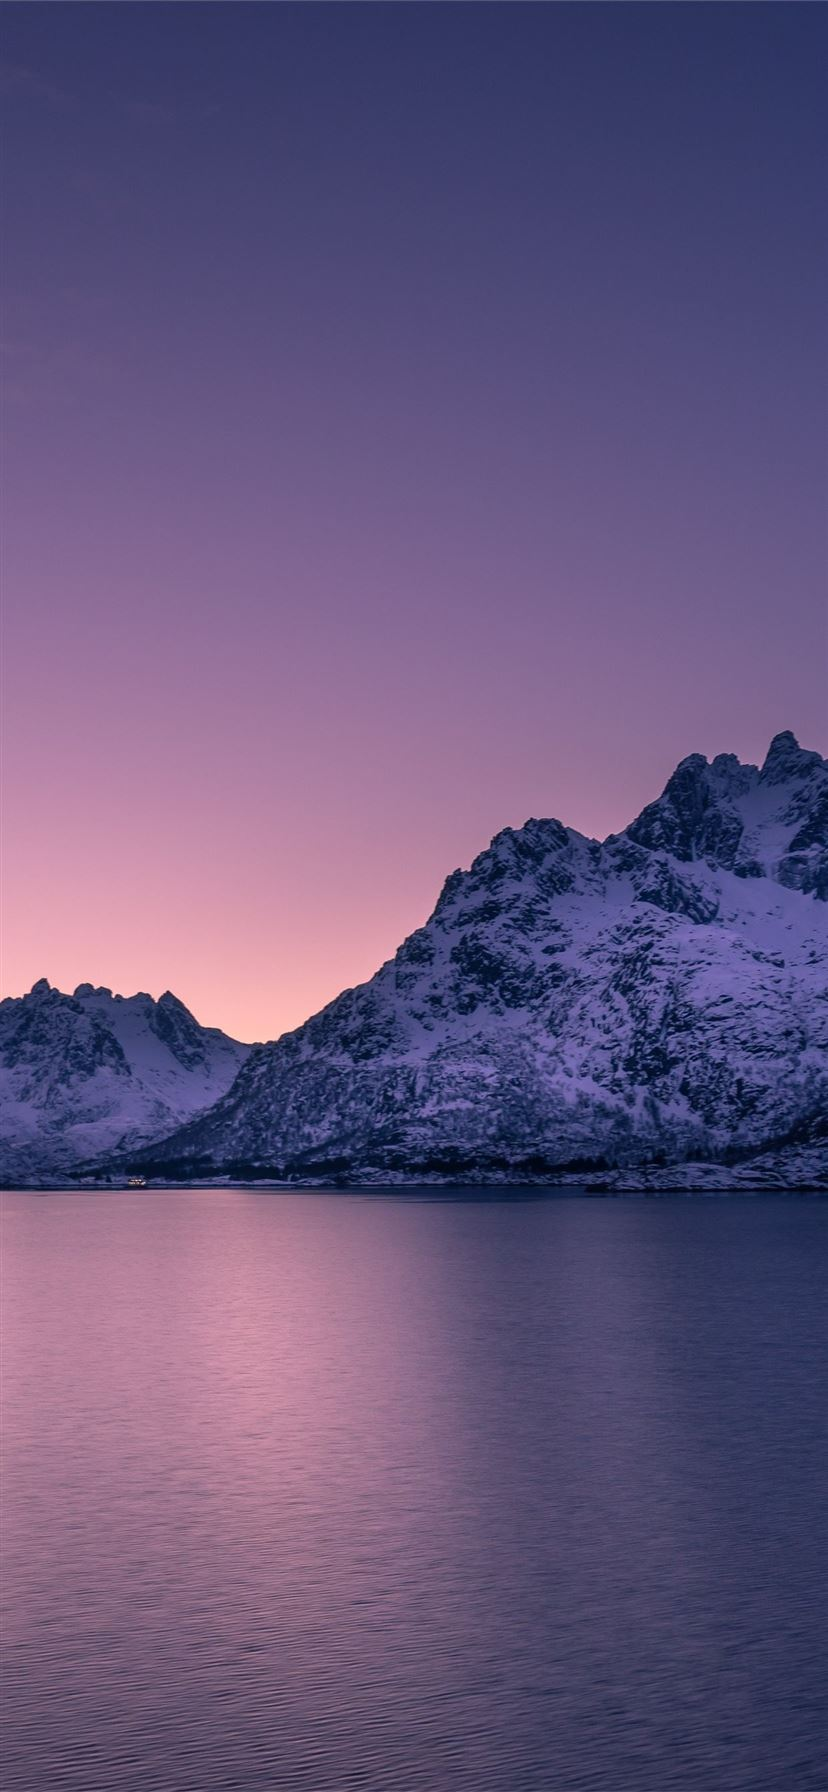 Lofoten Norway 5k Samsung Galaxy Note 9 8 S9 S8 S8 Iphone 11 Wallpapers Free Download